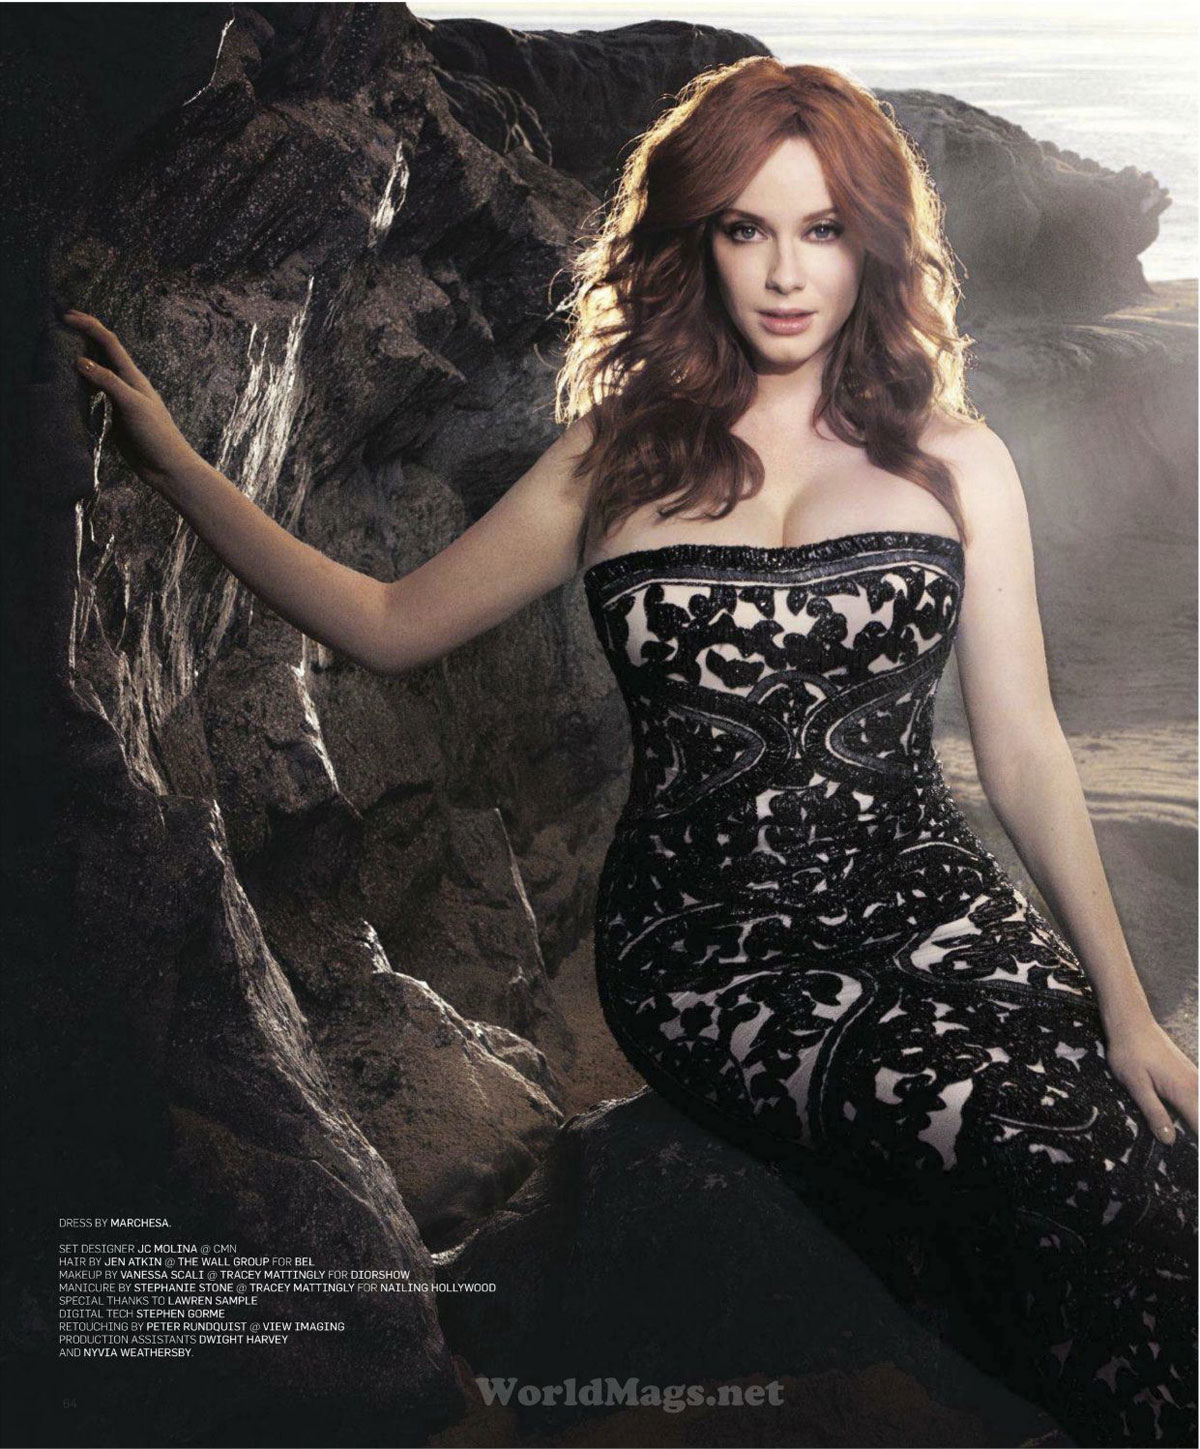 http://4.bp.blogspot.com/-uJzCqclIuMk/T1t3_gnMNfI/AAAAAAAAH_E/ie3oWCWemnk/s1600/Christina-Hendricks-in-BlackBook-Magazine-March-2012-Issue-5.jpg